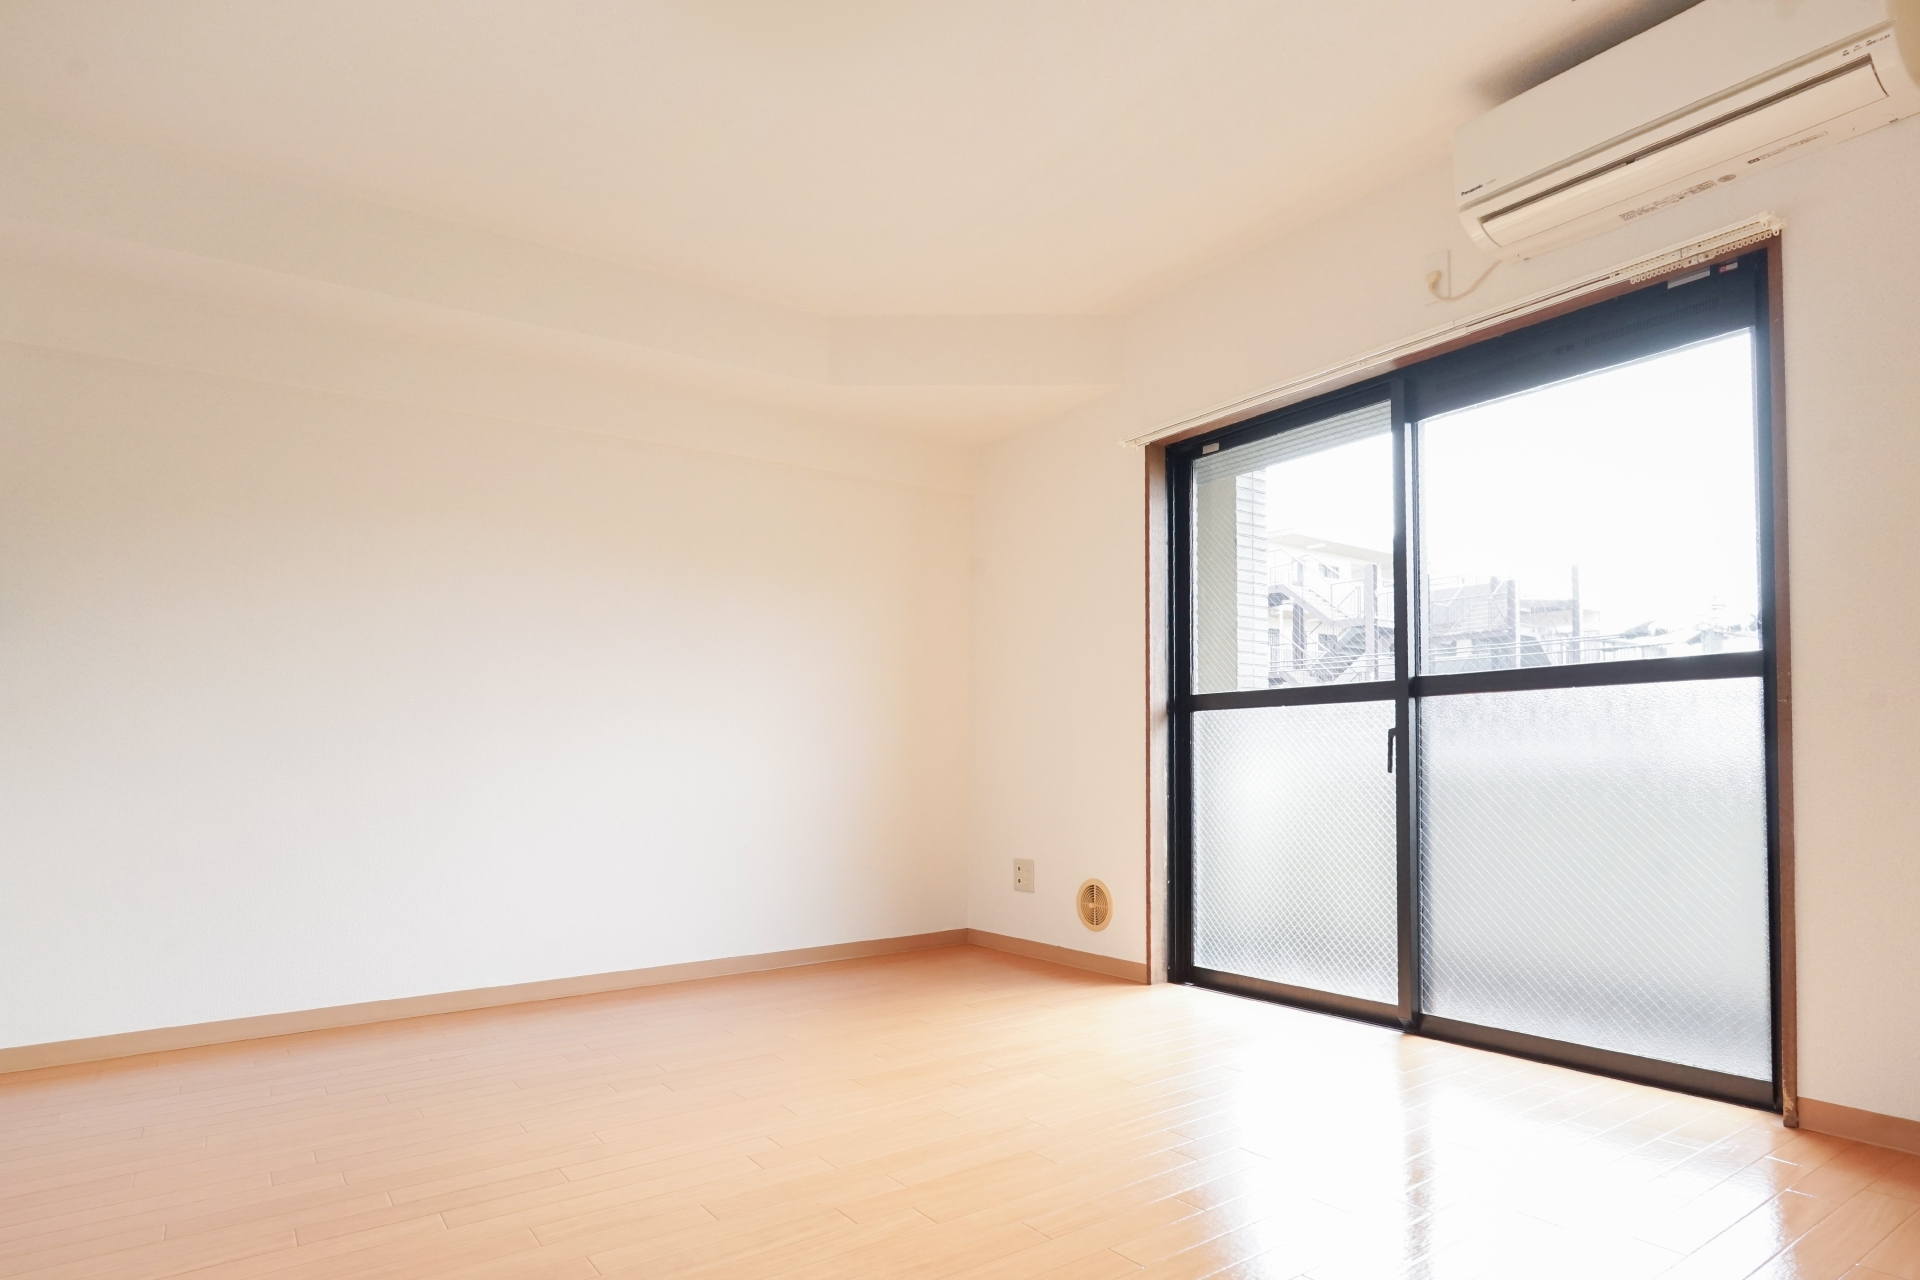 Tips for Renting an Apartment in Japan